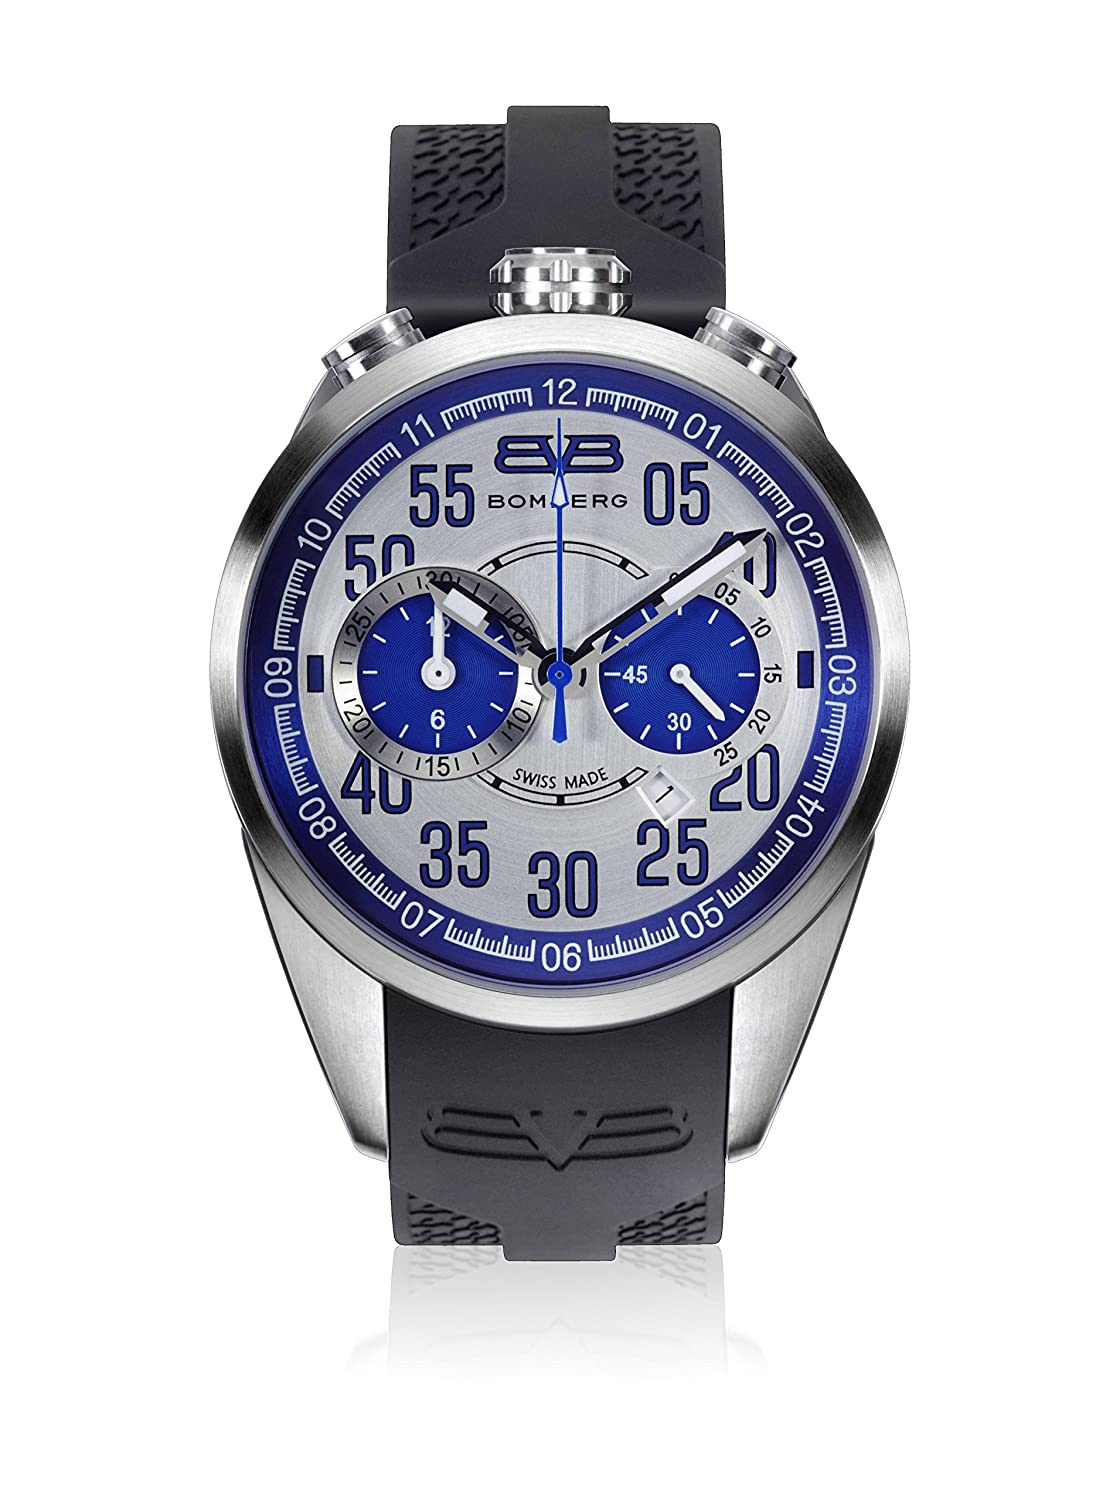 Bomberg NS44CHSS.0078.2 1968 collection Uhren - Swiss Made - 44 mm